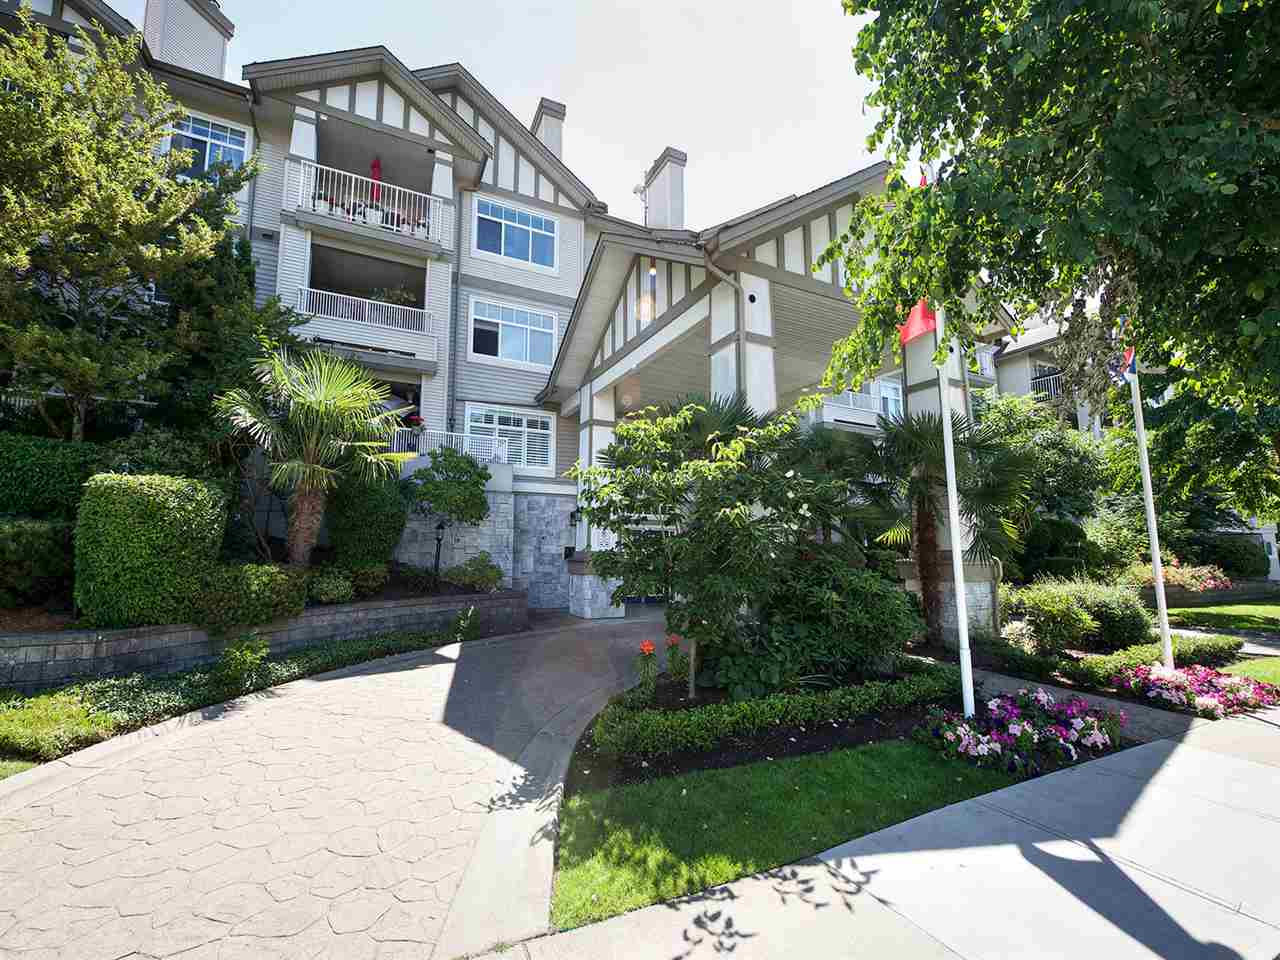 "Main Photo: 315 4770 52A Street in Delta: Delta Manor Condo for sale in ""WESTHAM LANE"" (Ladner)  : MLS® # R2189063"